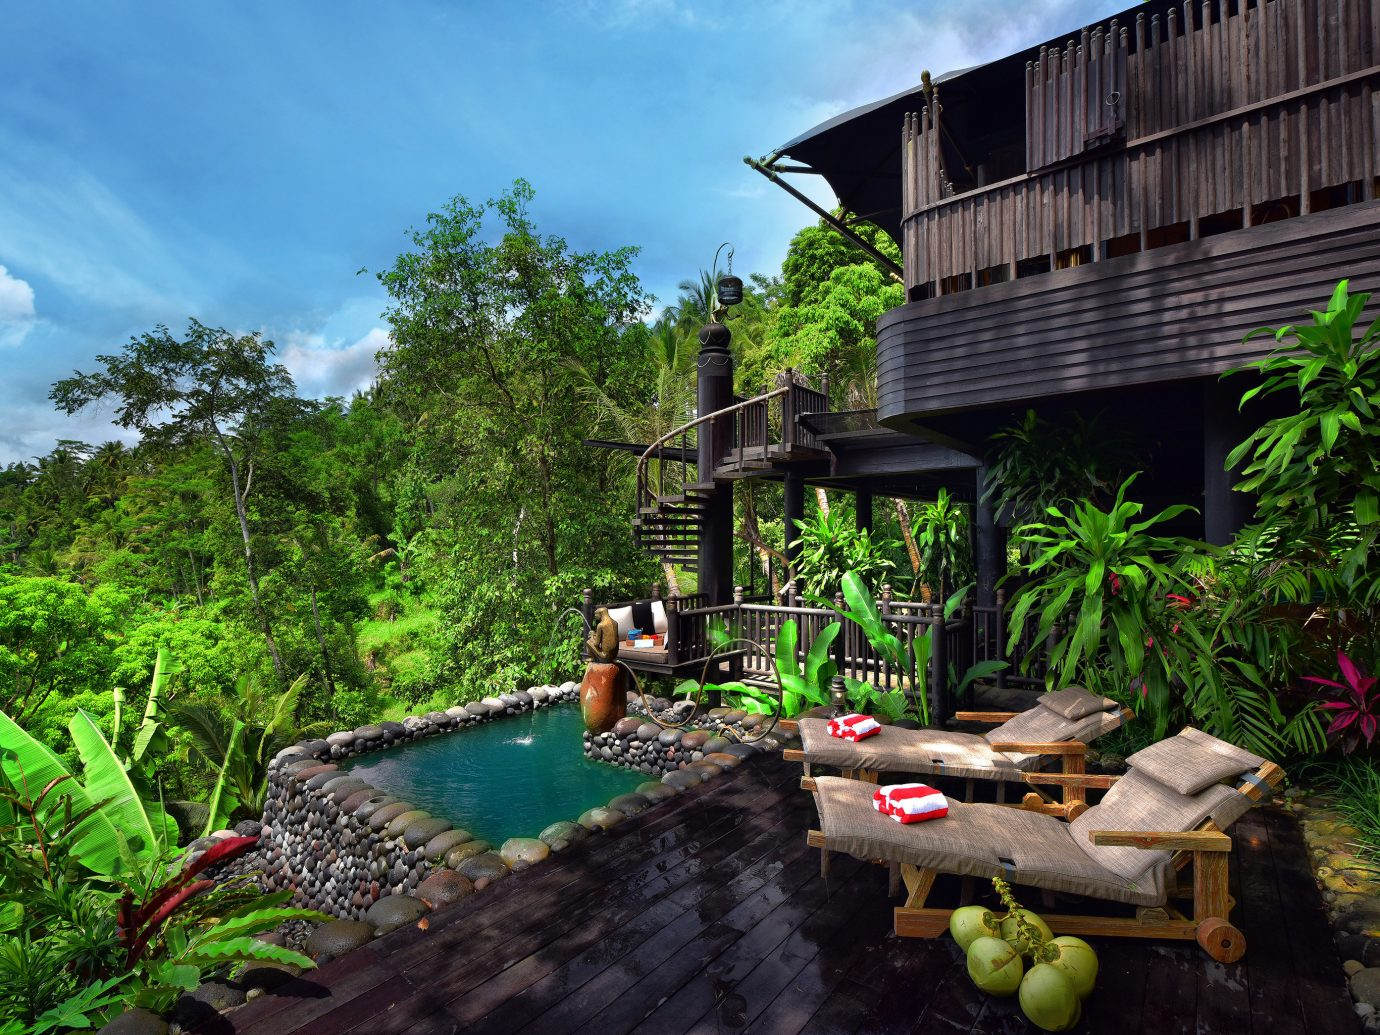 Hotels Outdoors + Adventure vegetation plant leisure water tree Resort landscape estate real estate Jungle backyard swimming pool house cottage sky outdoor structure rainforest Villa landscaping